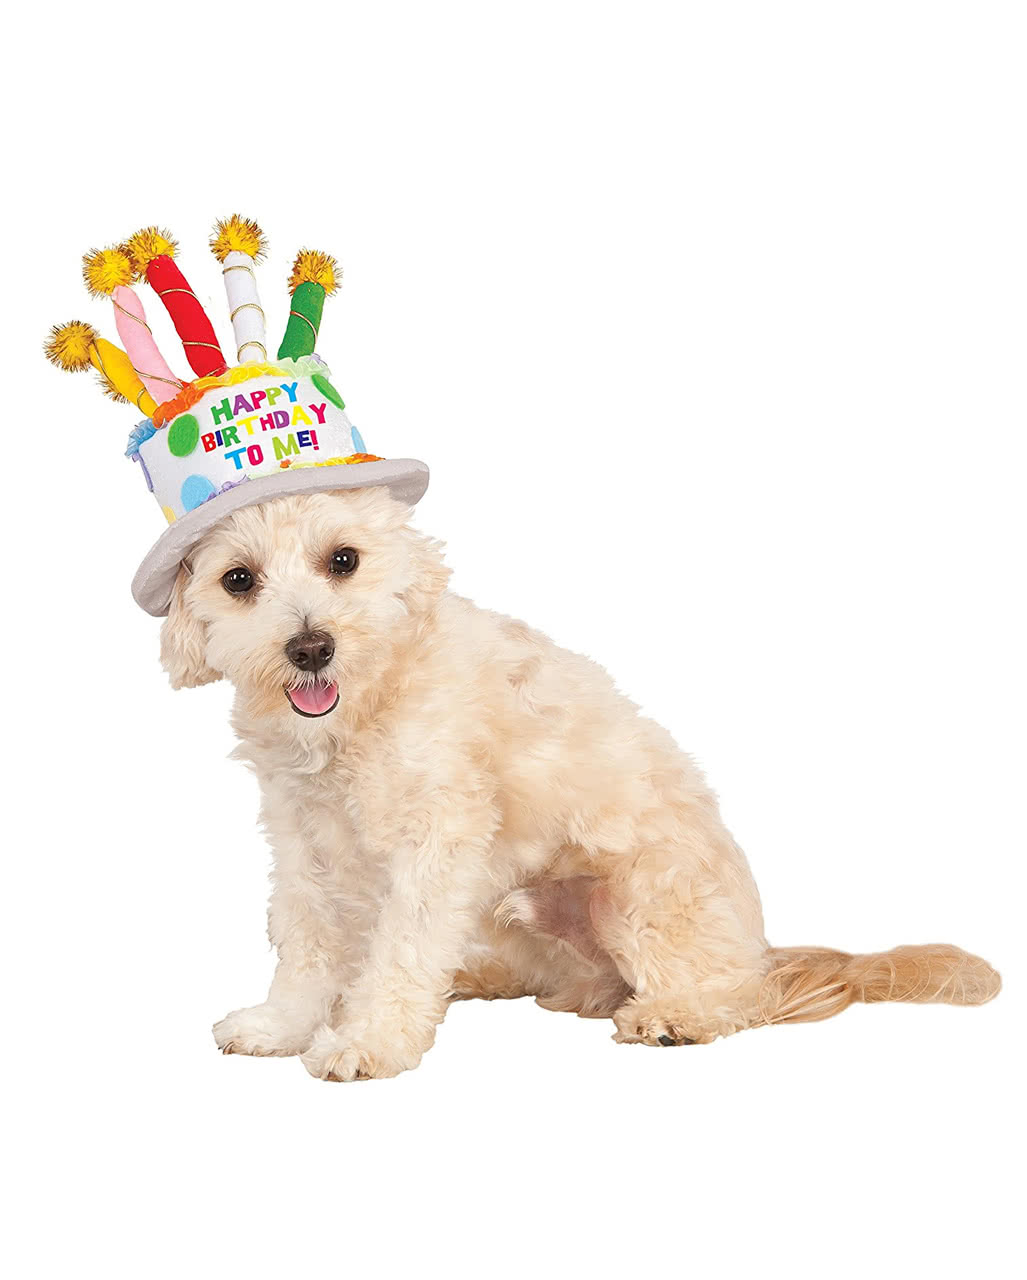 Birthday Cake Hat For Dogs As A Pet Costume